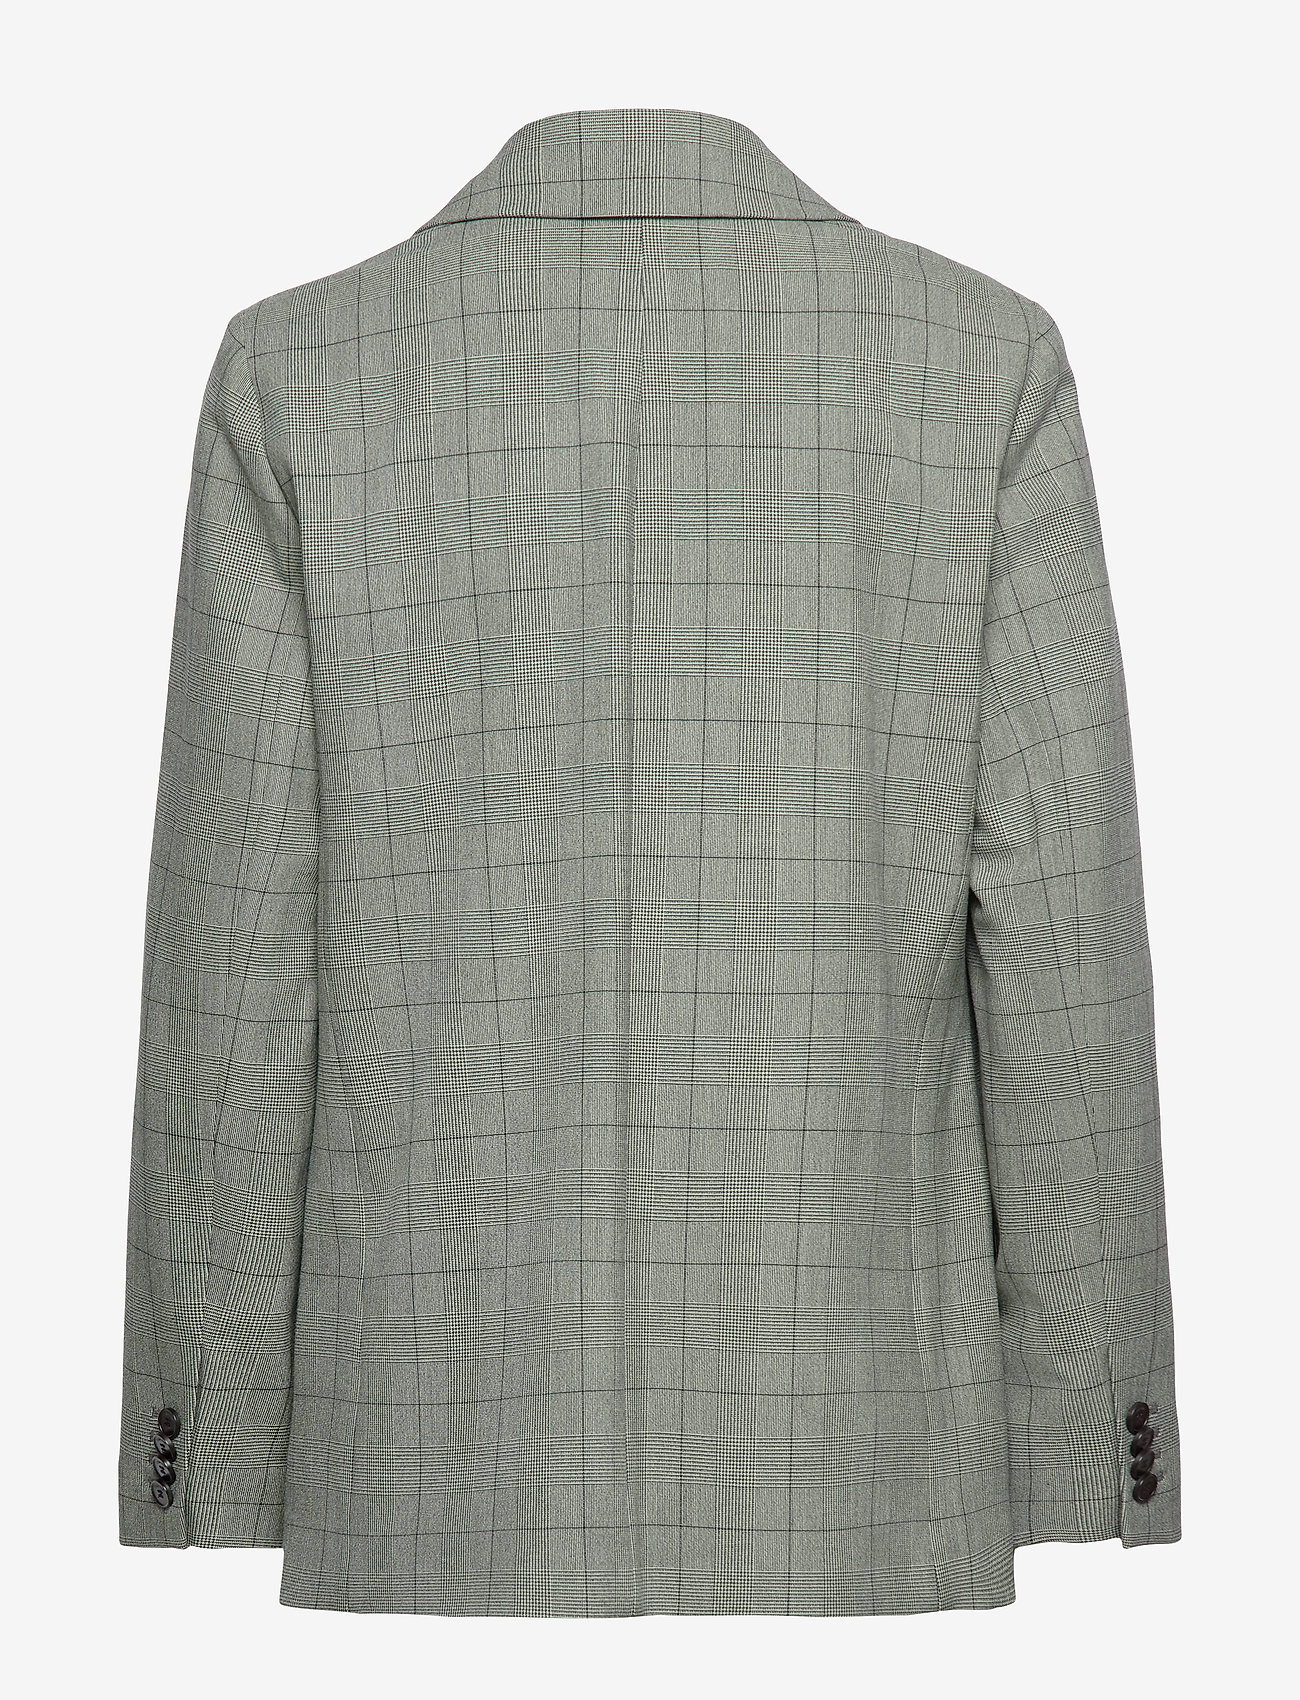 Check Relaxed Blazer (Tailoring Check - Apple Mint) (2240 kr) - Calvin Klein